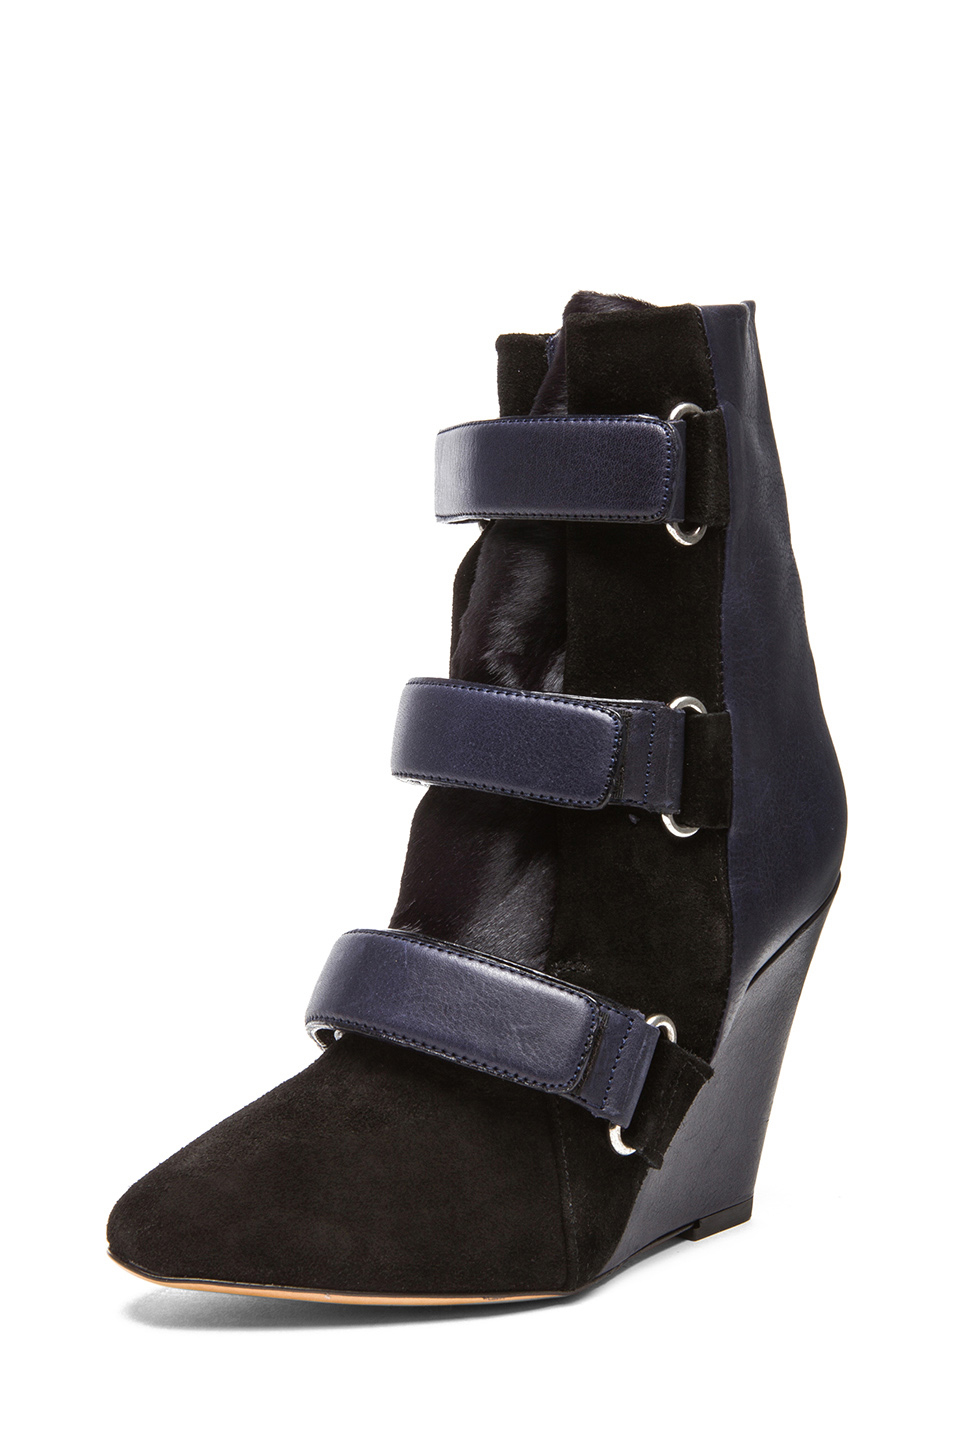 Isabel Marant|Scarlet Wedge Bootie in Midnight